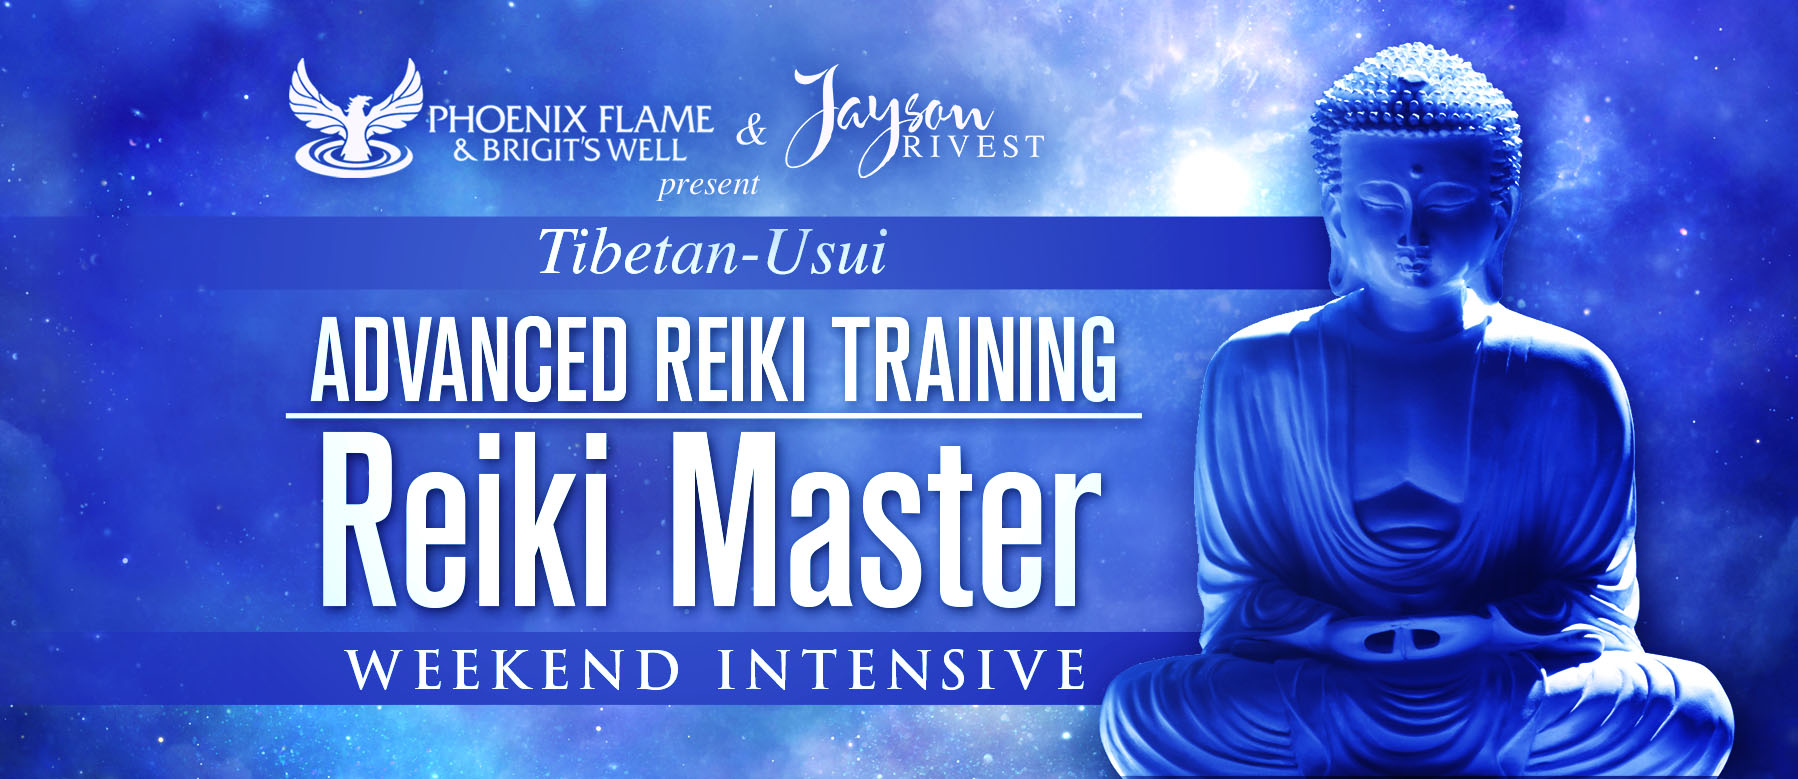 Advanced Reiki Training / Reiki Master